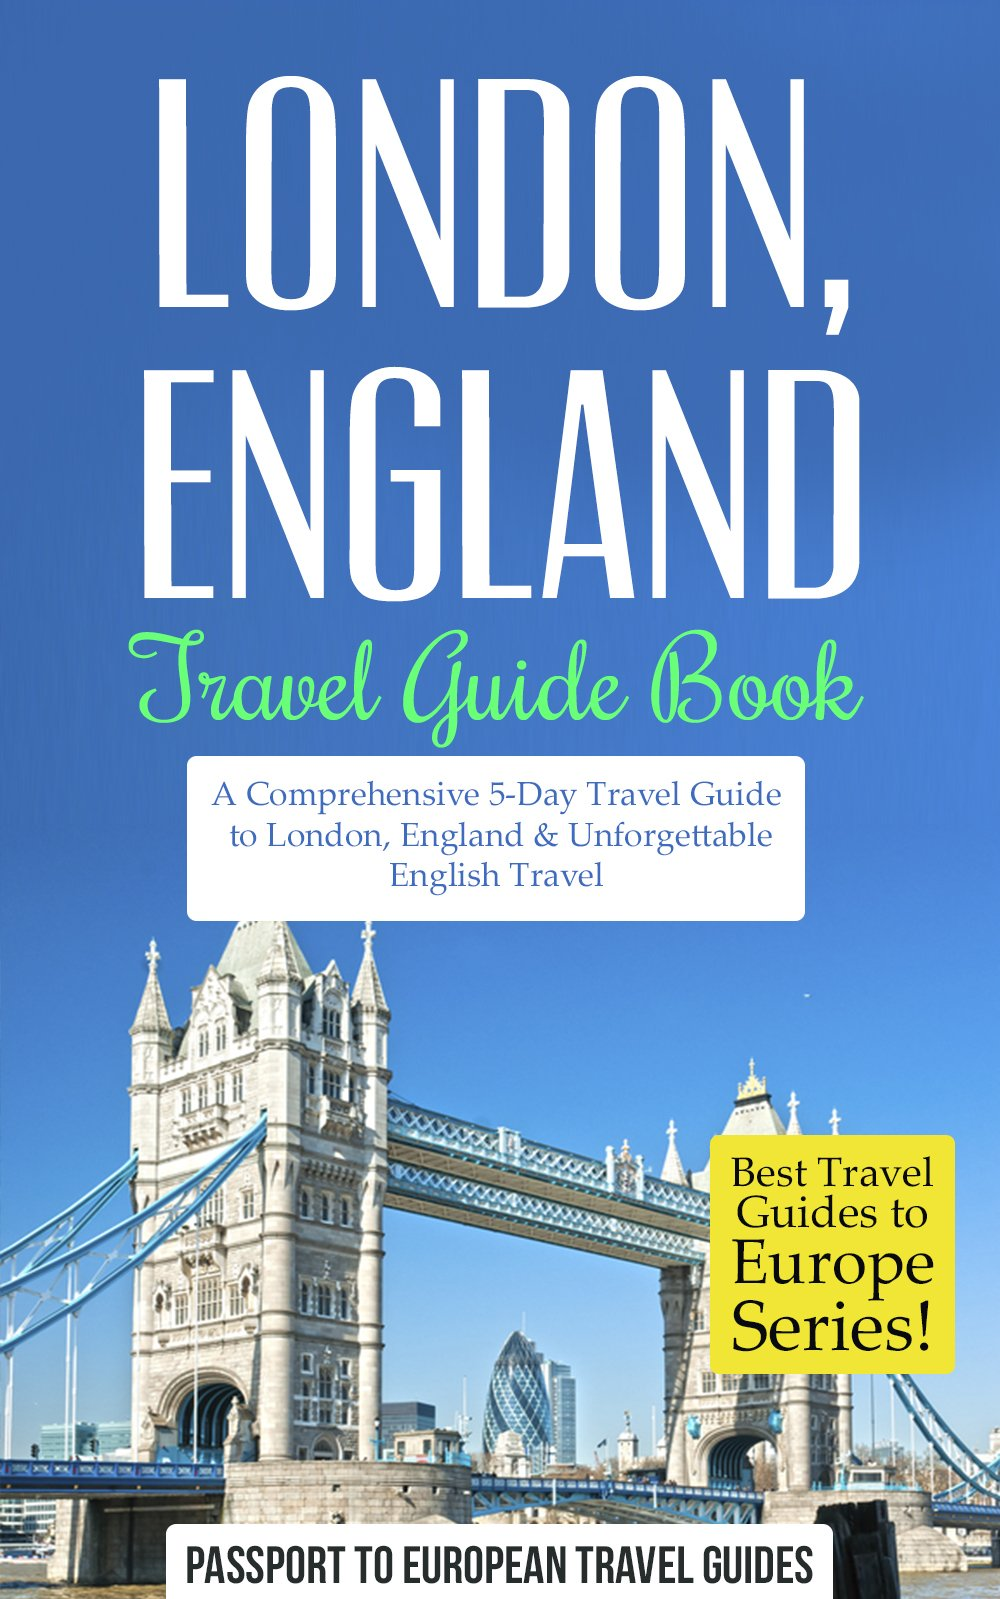 London Travel Guide: London England: Travel Guide Book—A Comprehensive 5-Day Travel Guide to London England & Unforgettable English Travel (Best Travel ... to Europe Series Book 9) (English Edition)